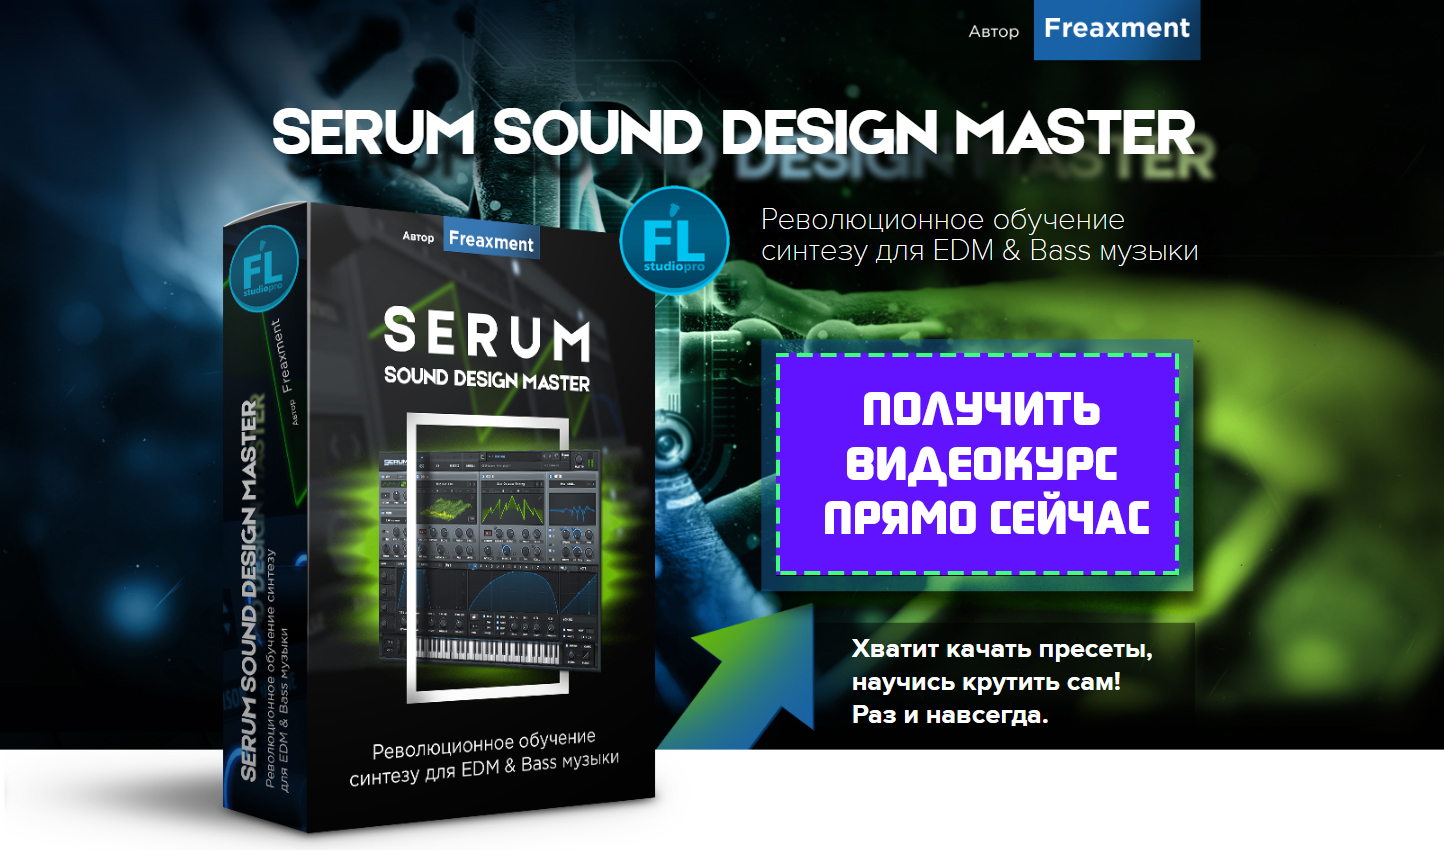 Serum Sound Design Master